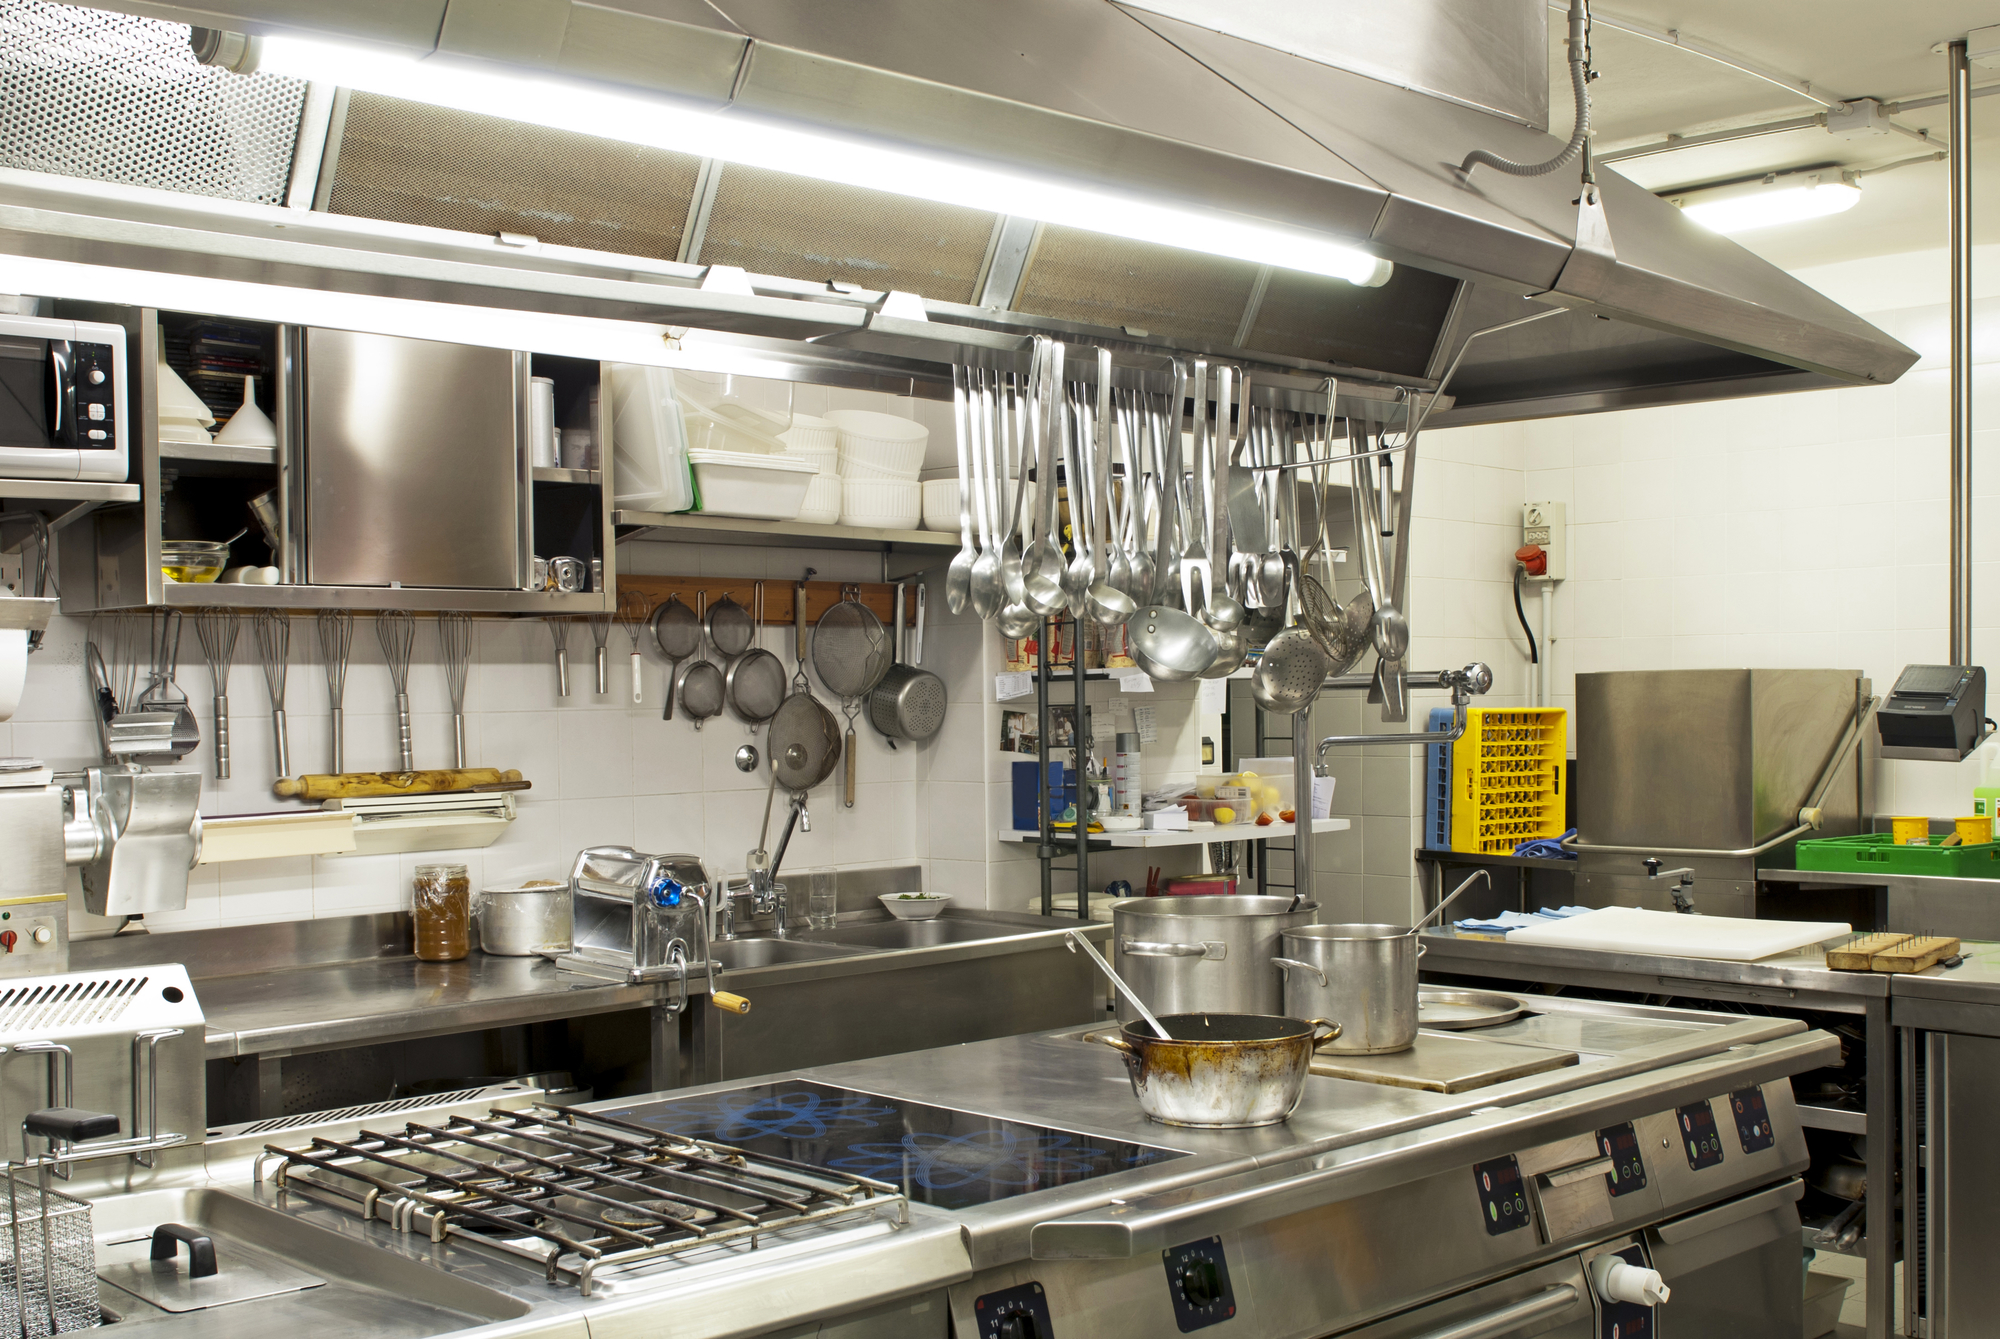 New to running a kitchen here is your restaurant equipment checklist tech 24 feasterville Kitchen diner design tool